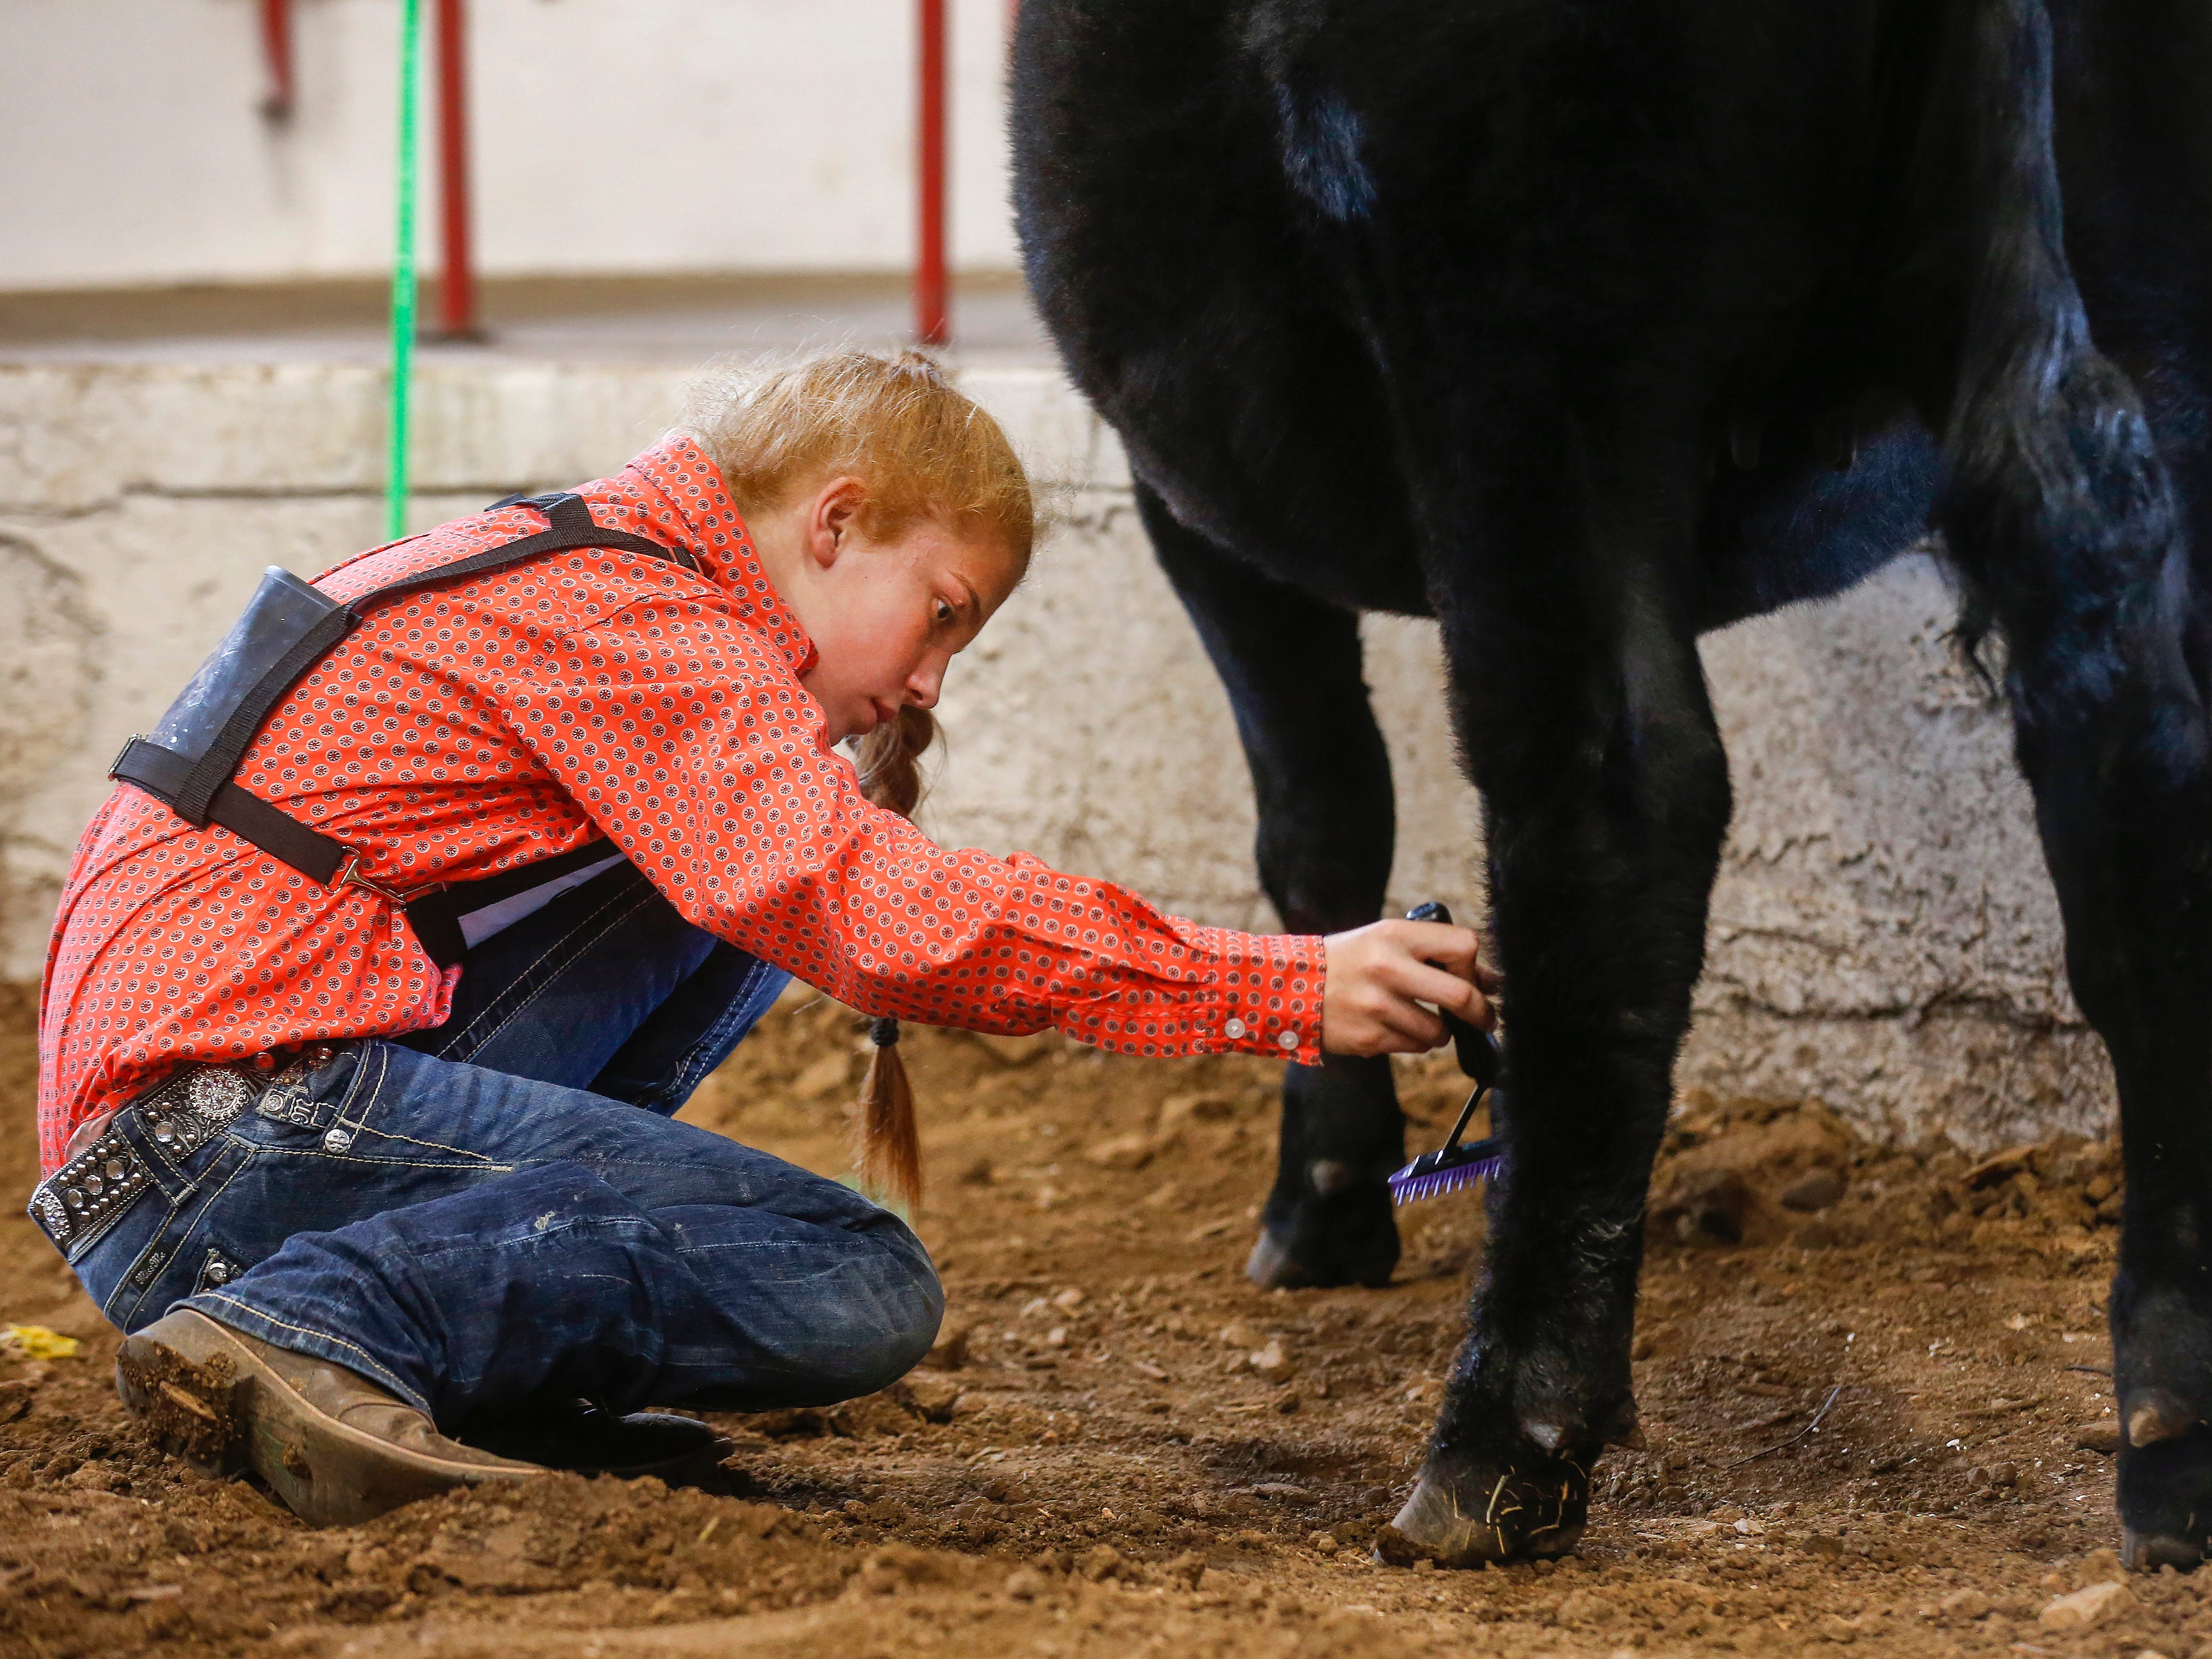 Abby McNish, 13, of Ava, combs Annie before the Angus competition at the Ozark Empire Fair on Saturday, July 28, 2018.